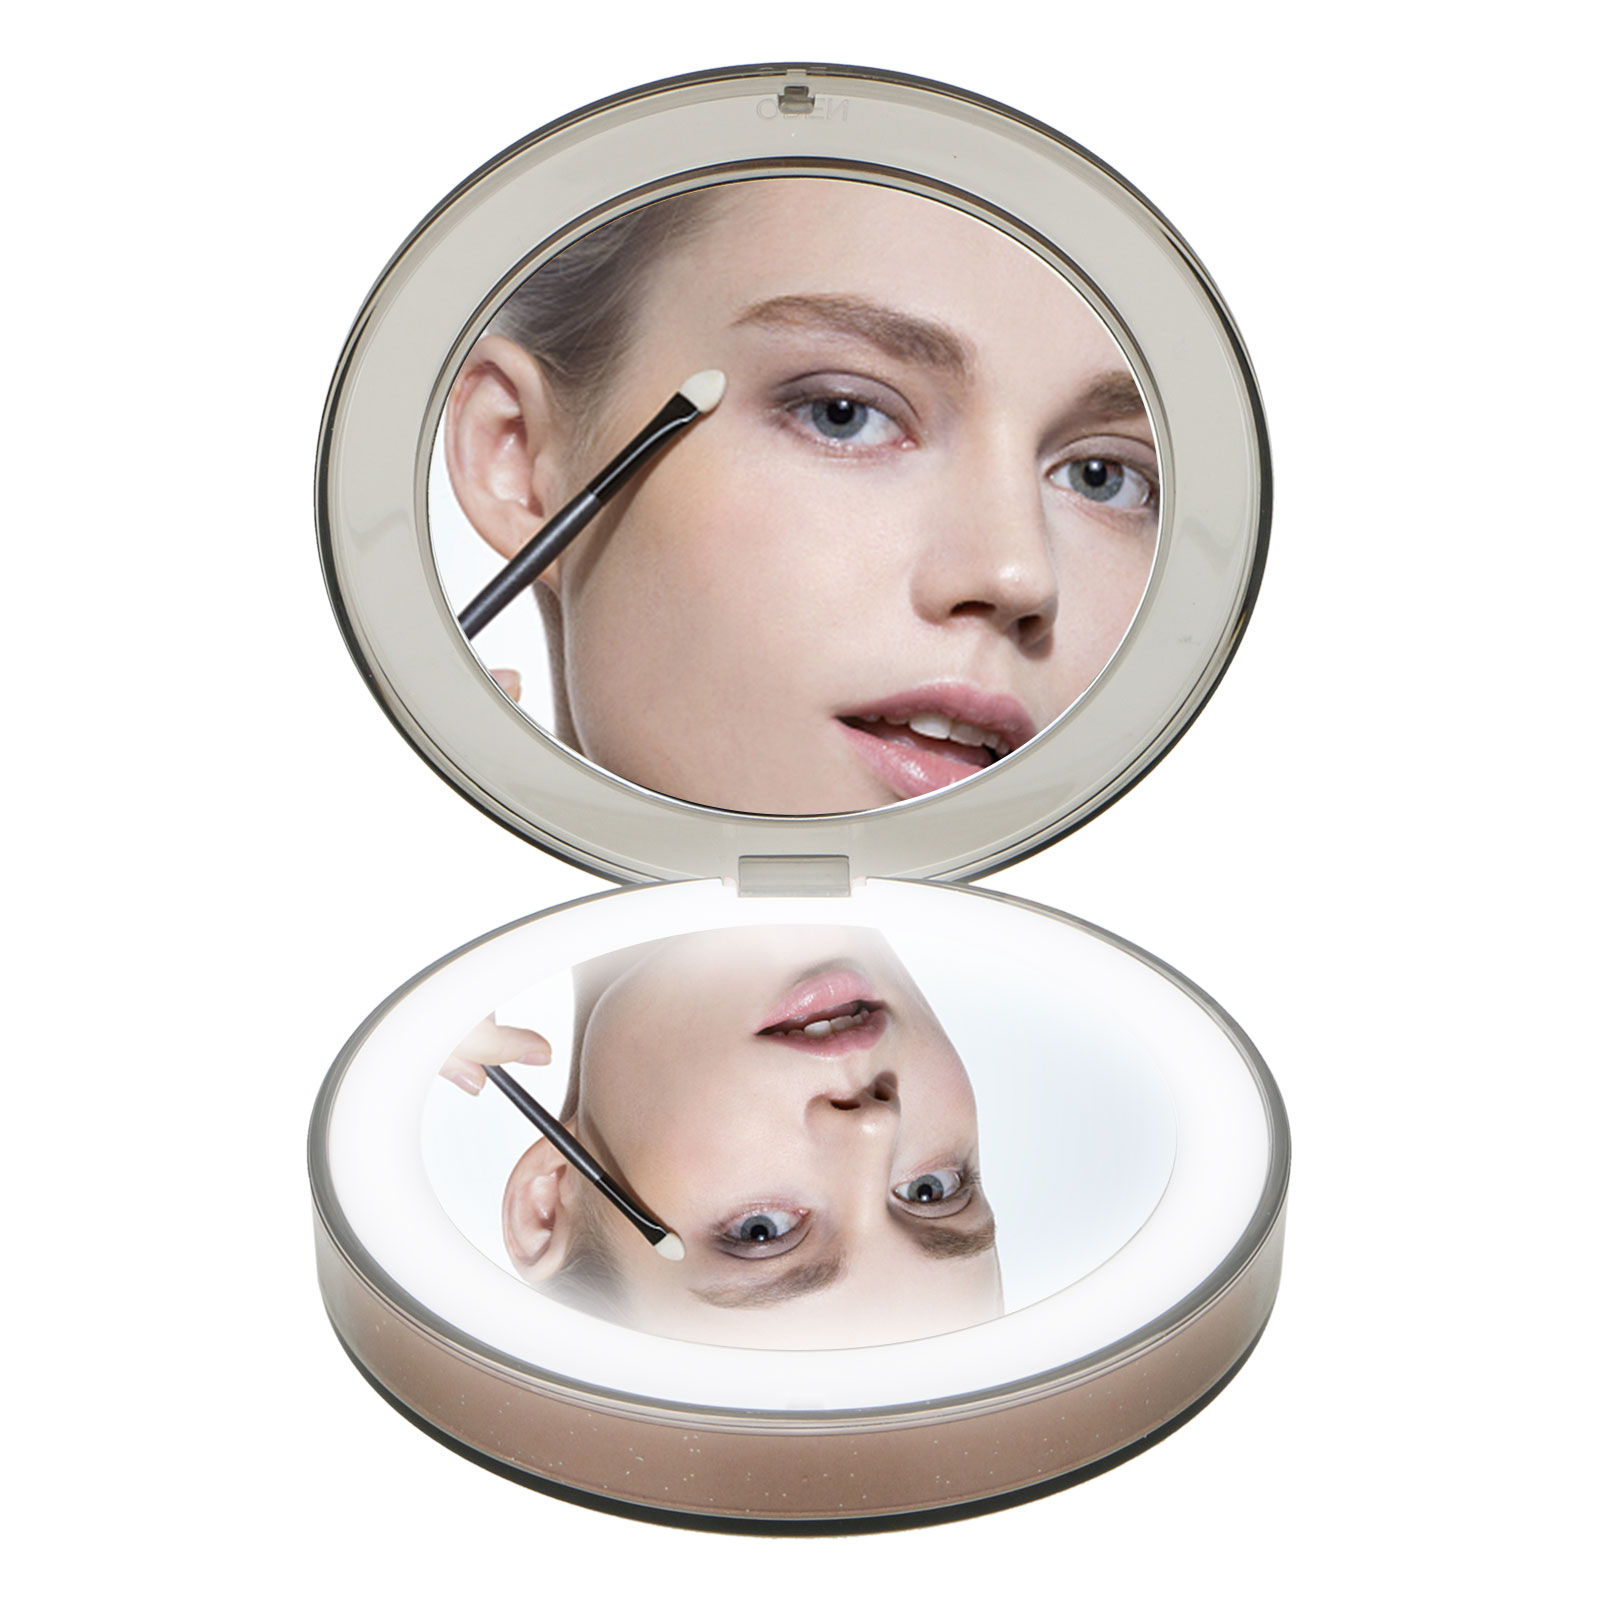 LED Lighted Travel Makeup Mirror, Round 1x/3x Magnification Folding Portable Compact Pocket Mirror with LED Lights Lamps USB Chargeable for Beauty Cosmetic Camping